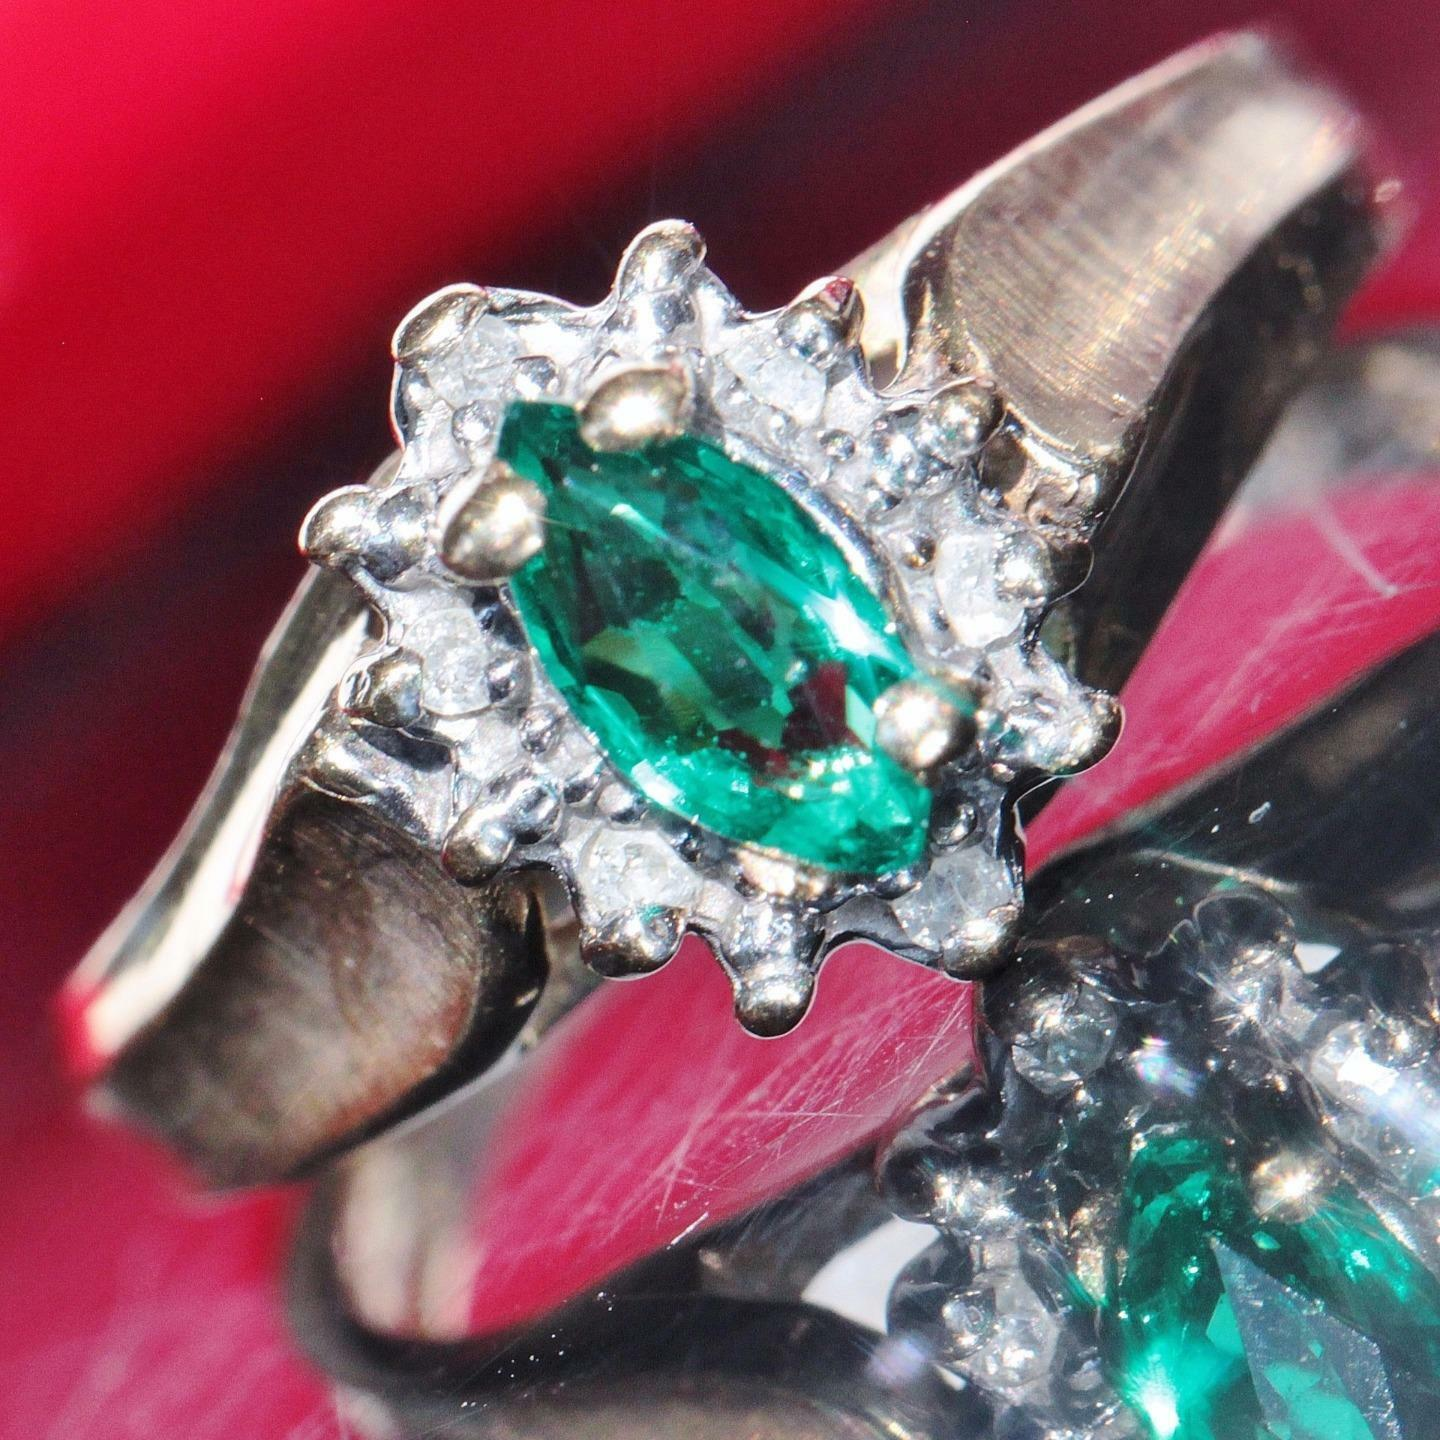 10k yellow gold ring 0.30ct Colombian emerald diamond size 4 vintage 2.1g N2386A